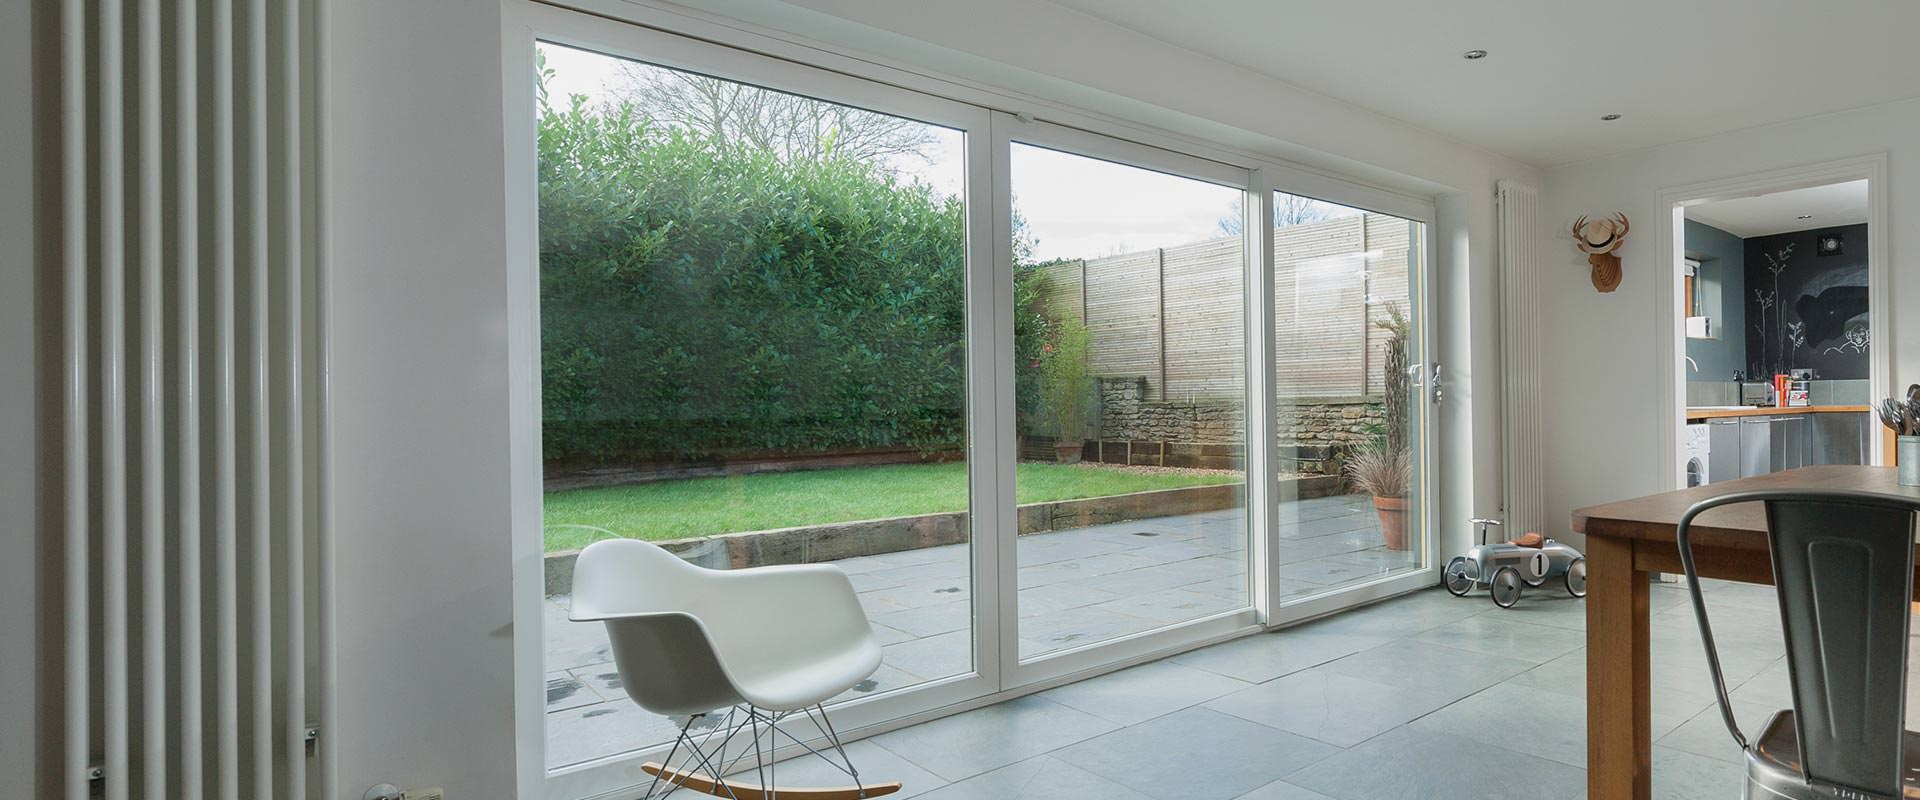 Book a showroom visit double glazing chigwell essex for Patio door companies